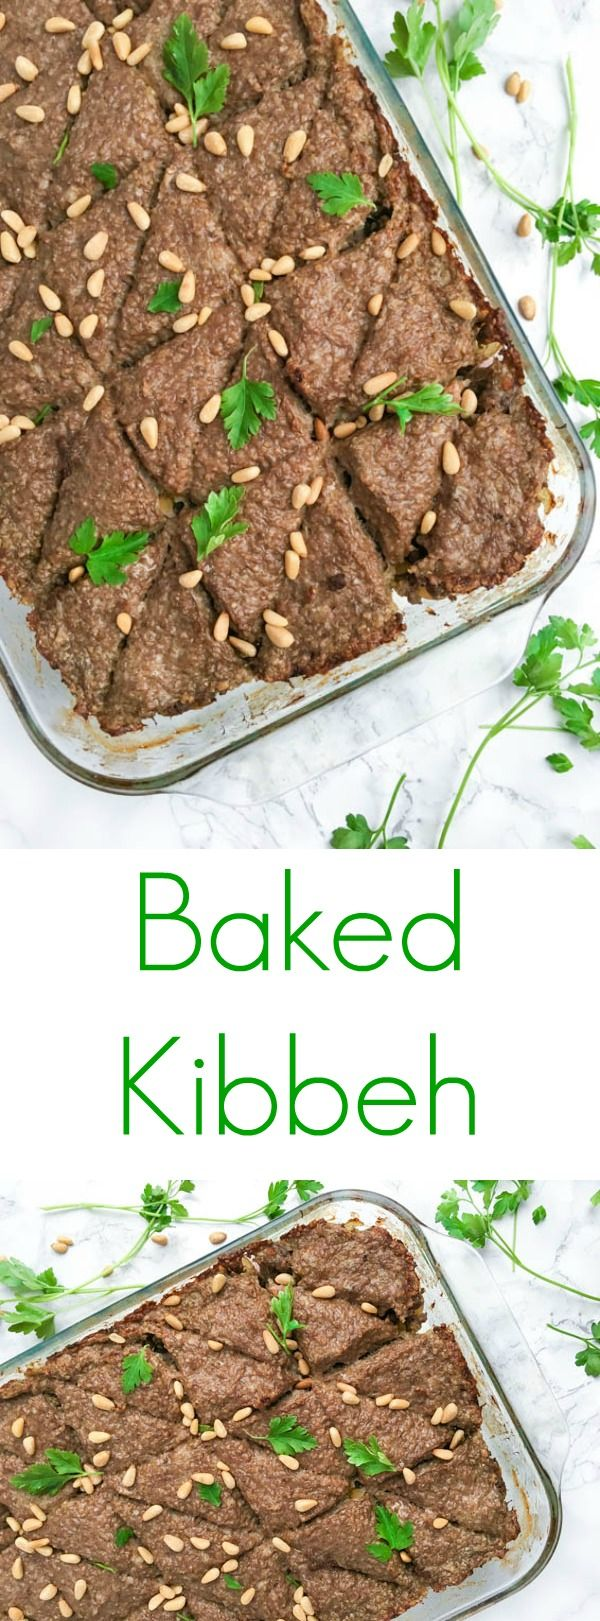 Baked kibbeh, a traditional Lebanese dinner recipe, is made with ground beef or lamb combined with bulgur wheat, pine nuts and warm spices like cinnamon and allspice. (Baking Pasta With Ground Beef)